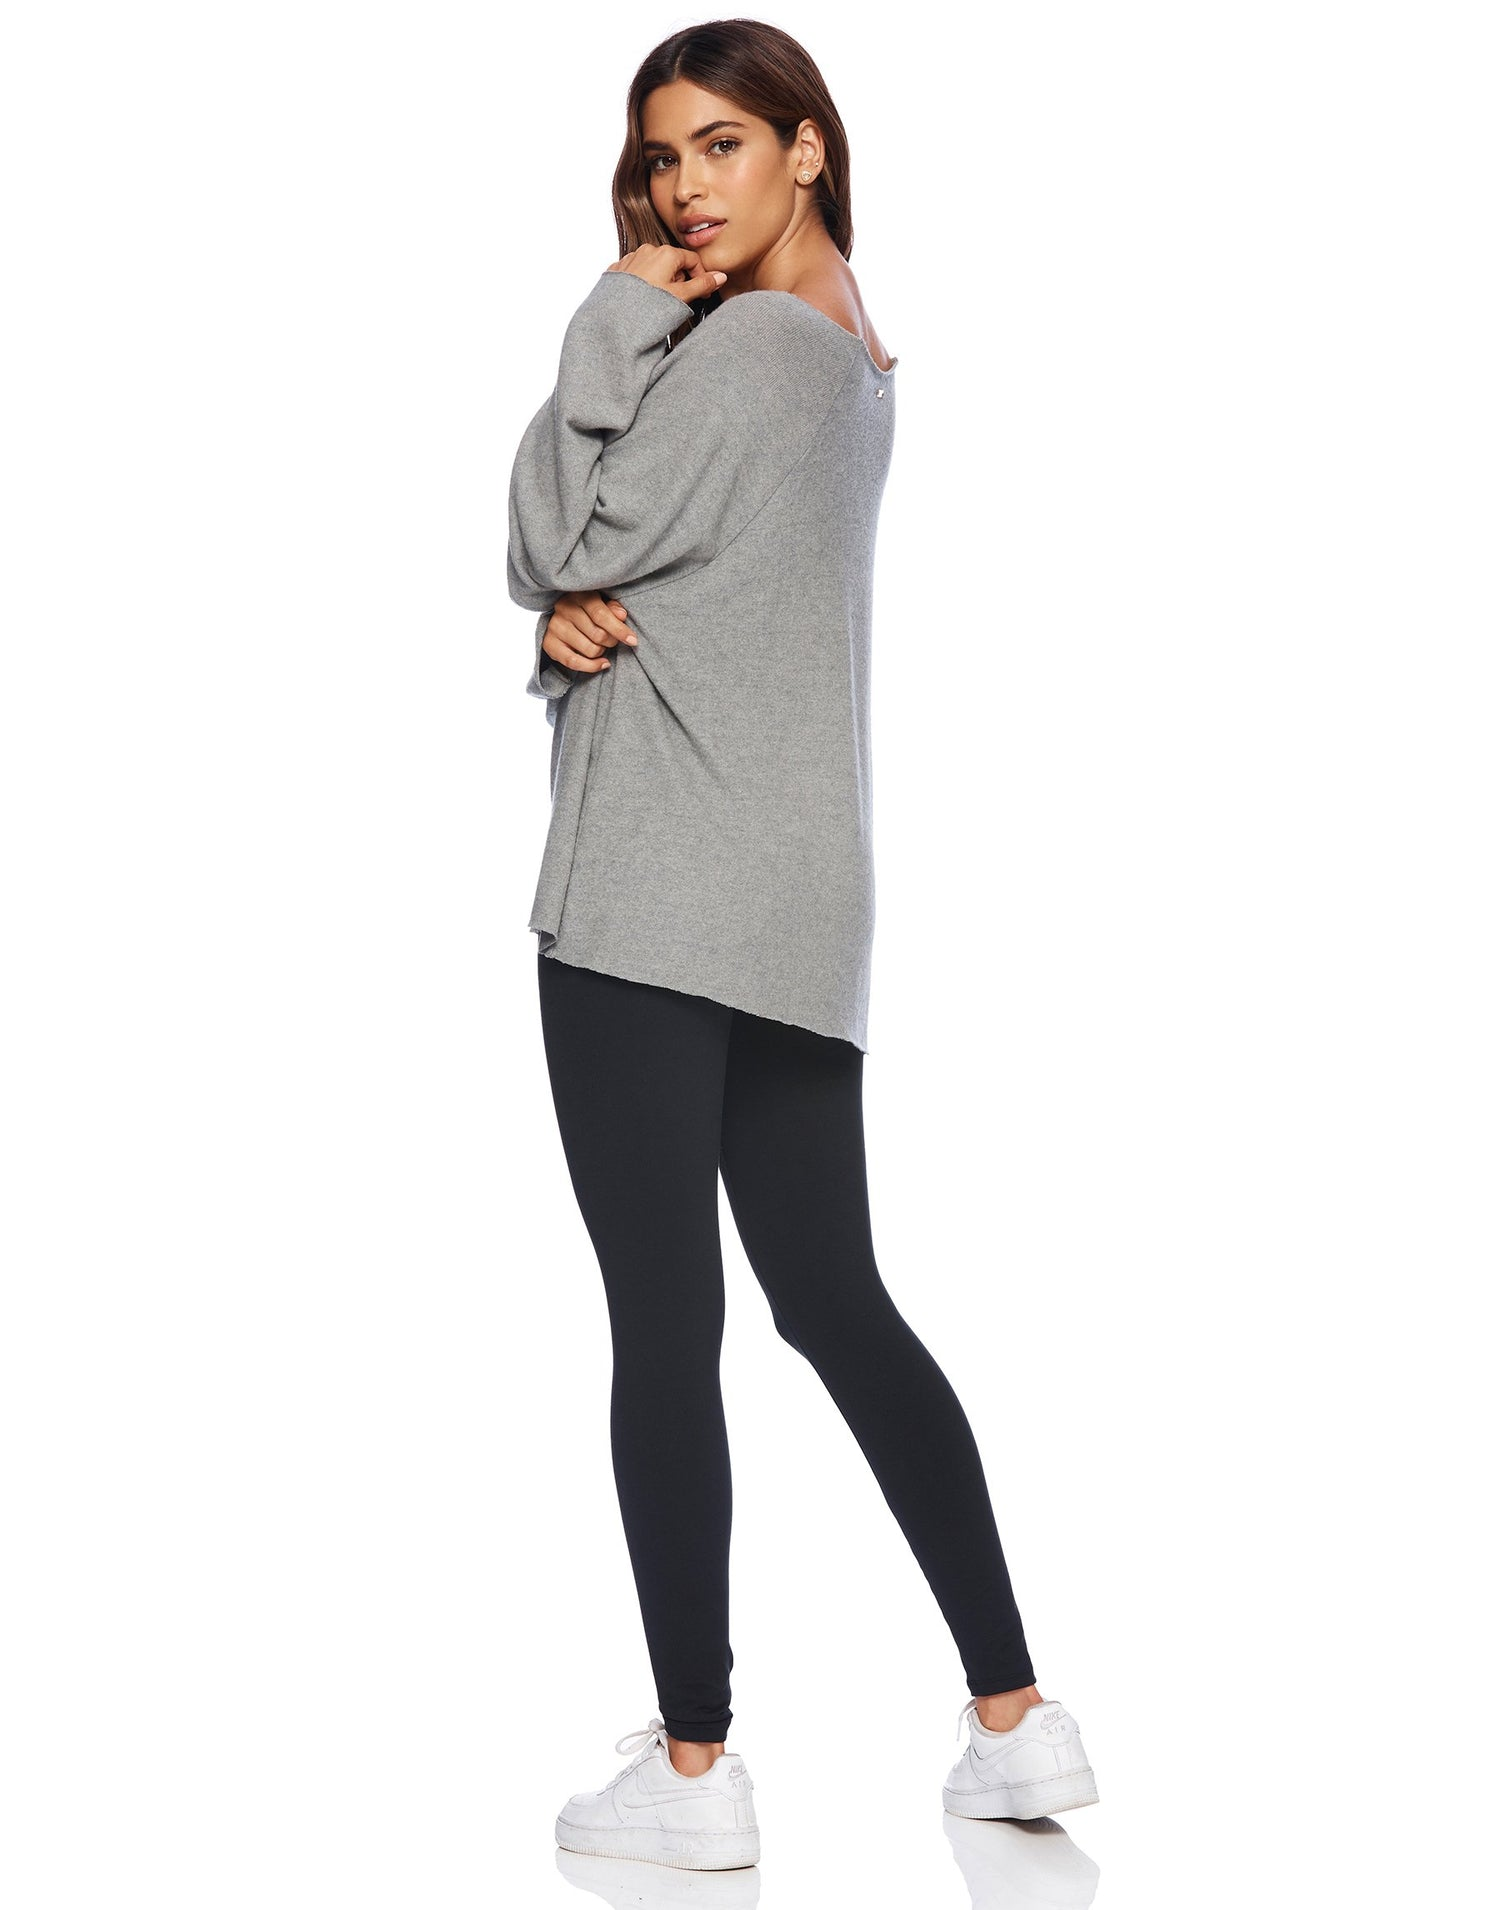 Back View - Josie Sweatshirt in Heather Gray